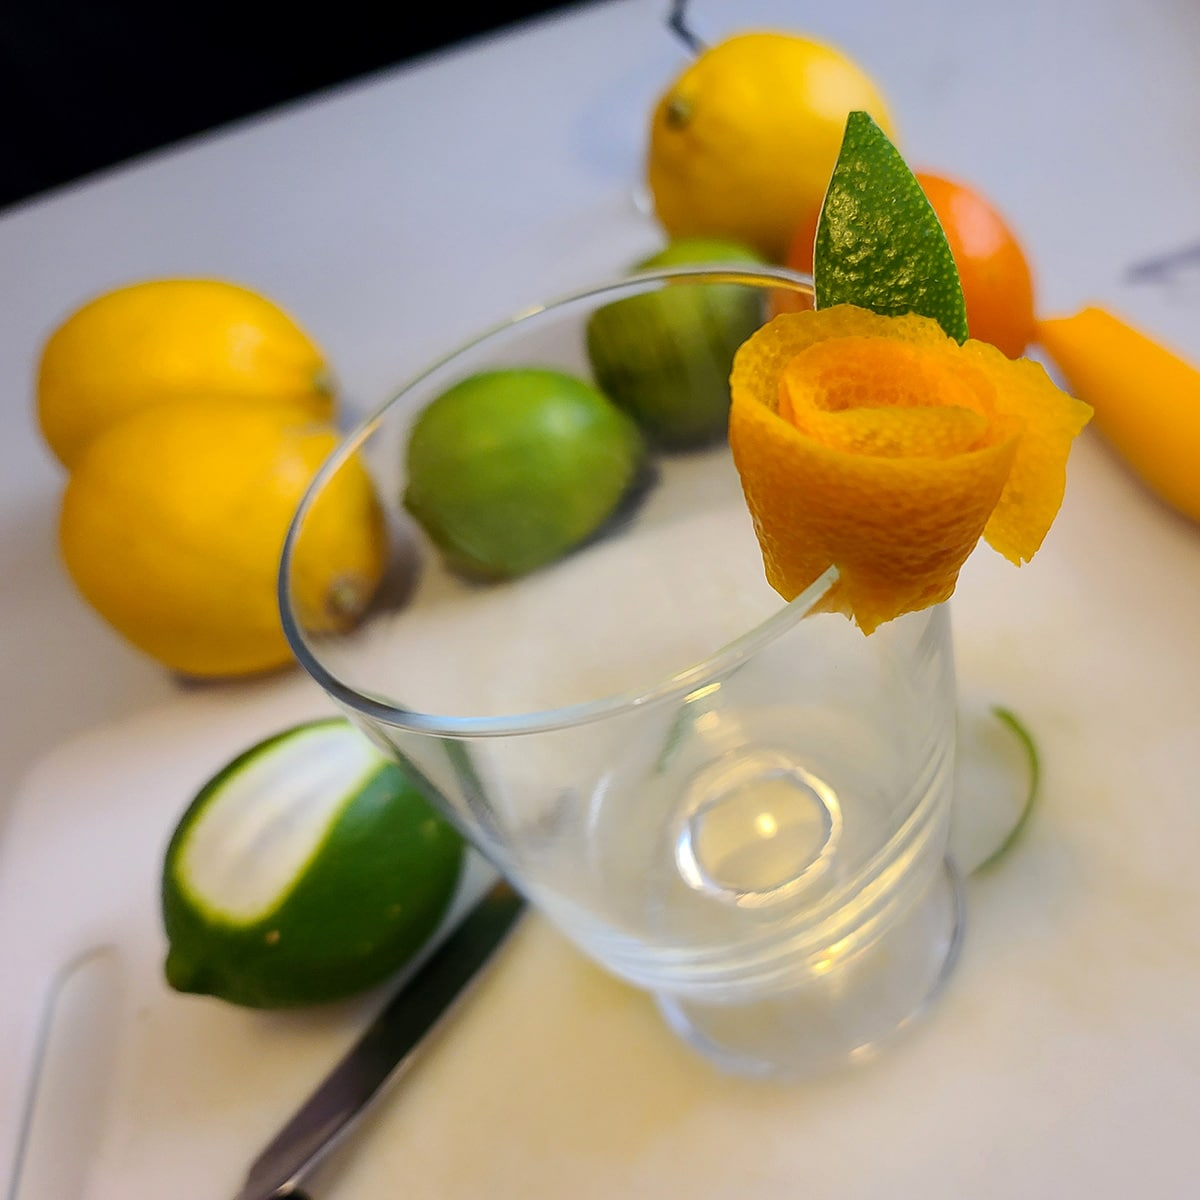 A citrus peel rose garnish on the edge of a cocktail glass.